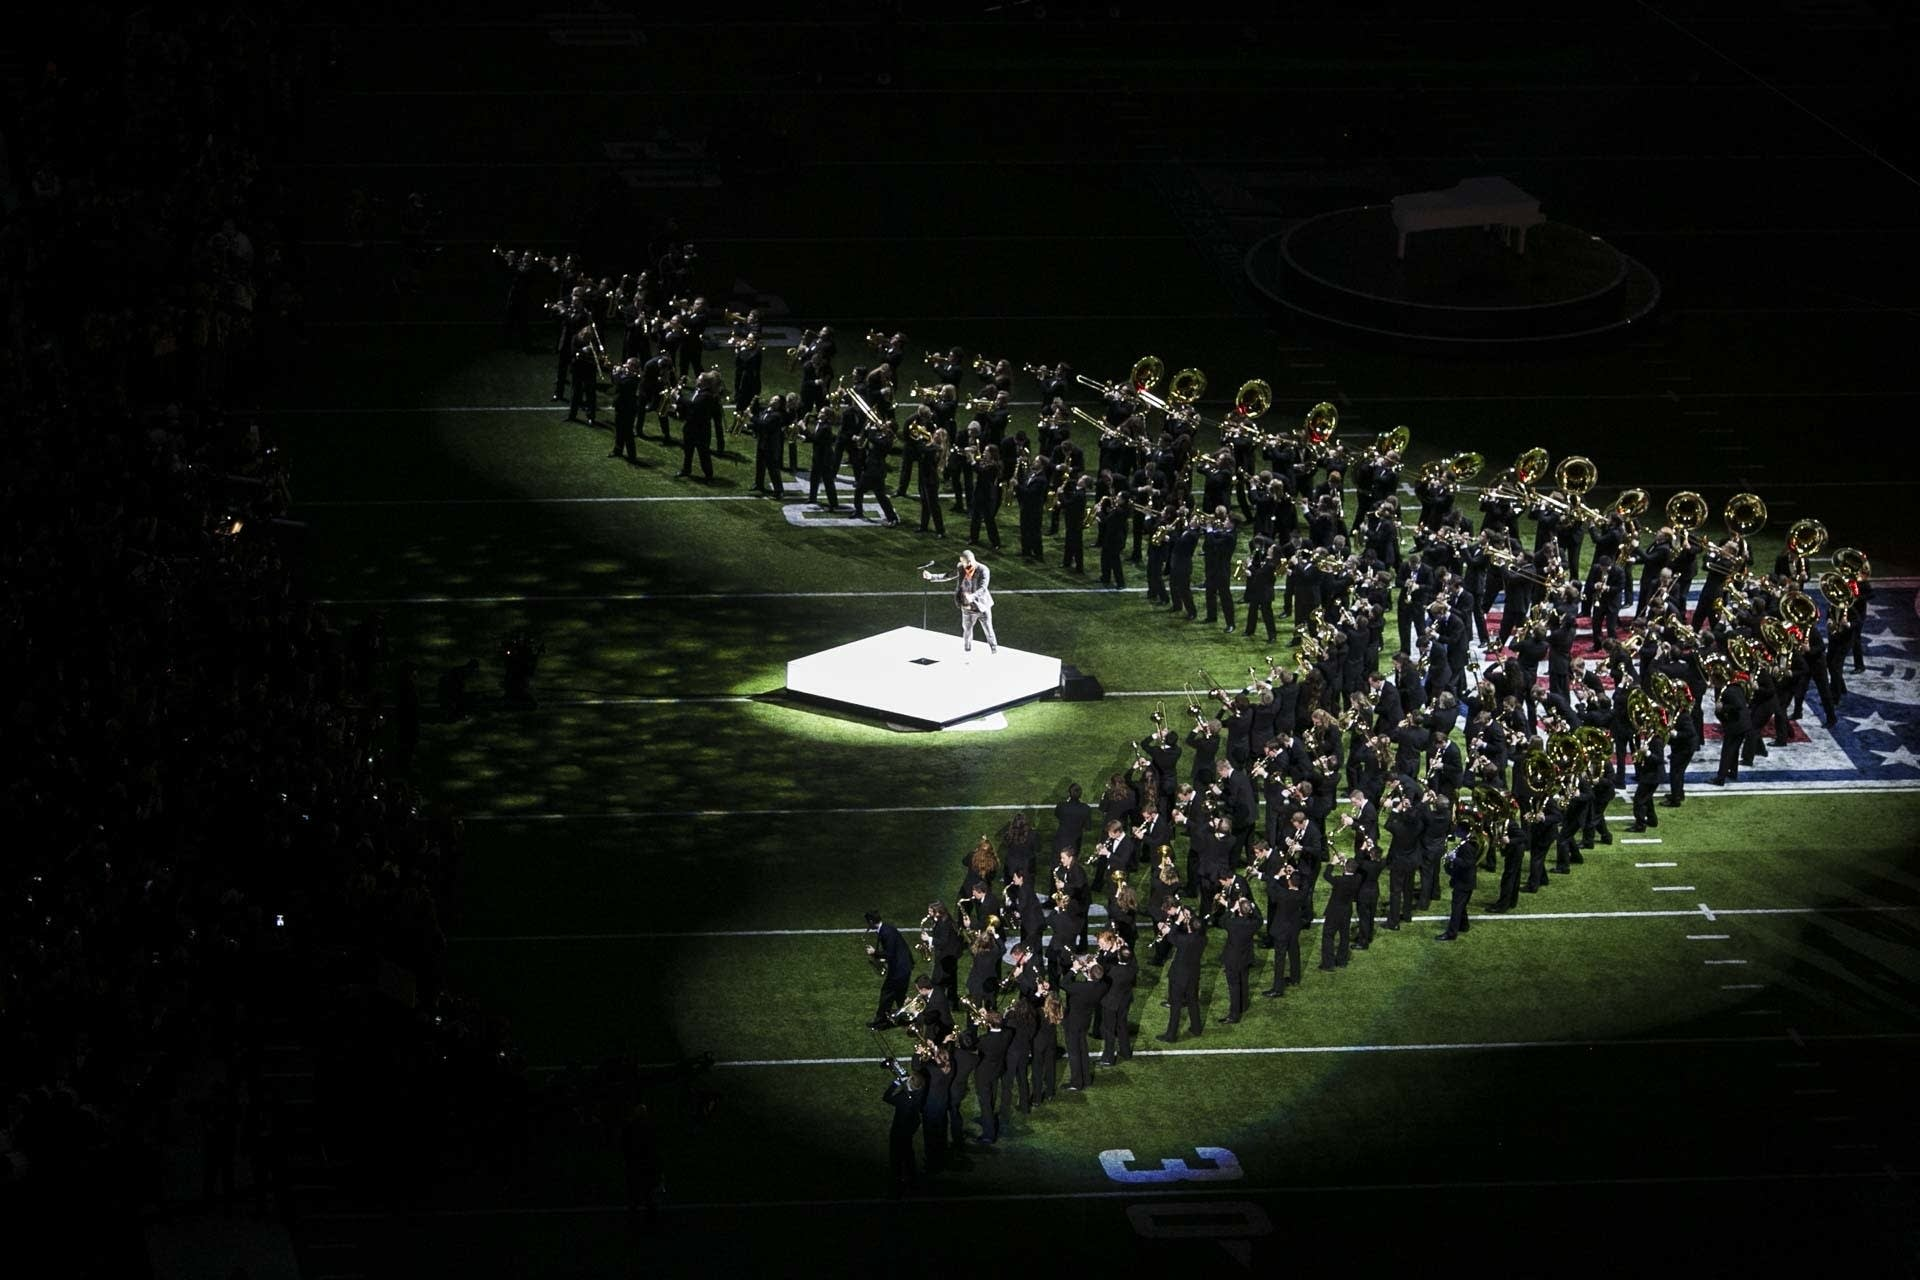 The University of Minnesota Marching Band performs with Justin Timberlake.